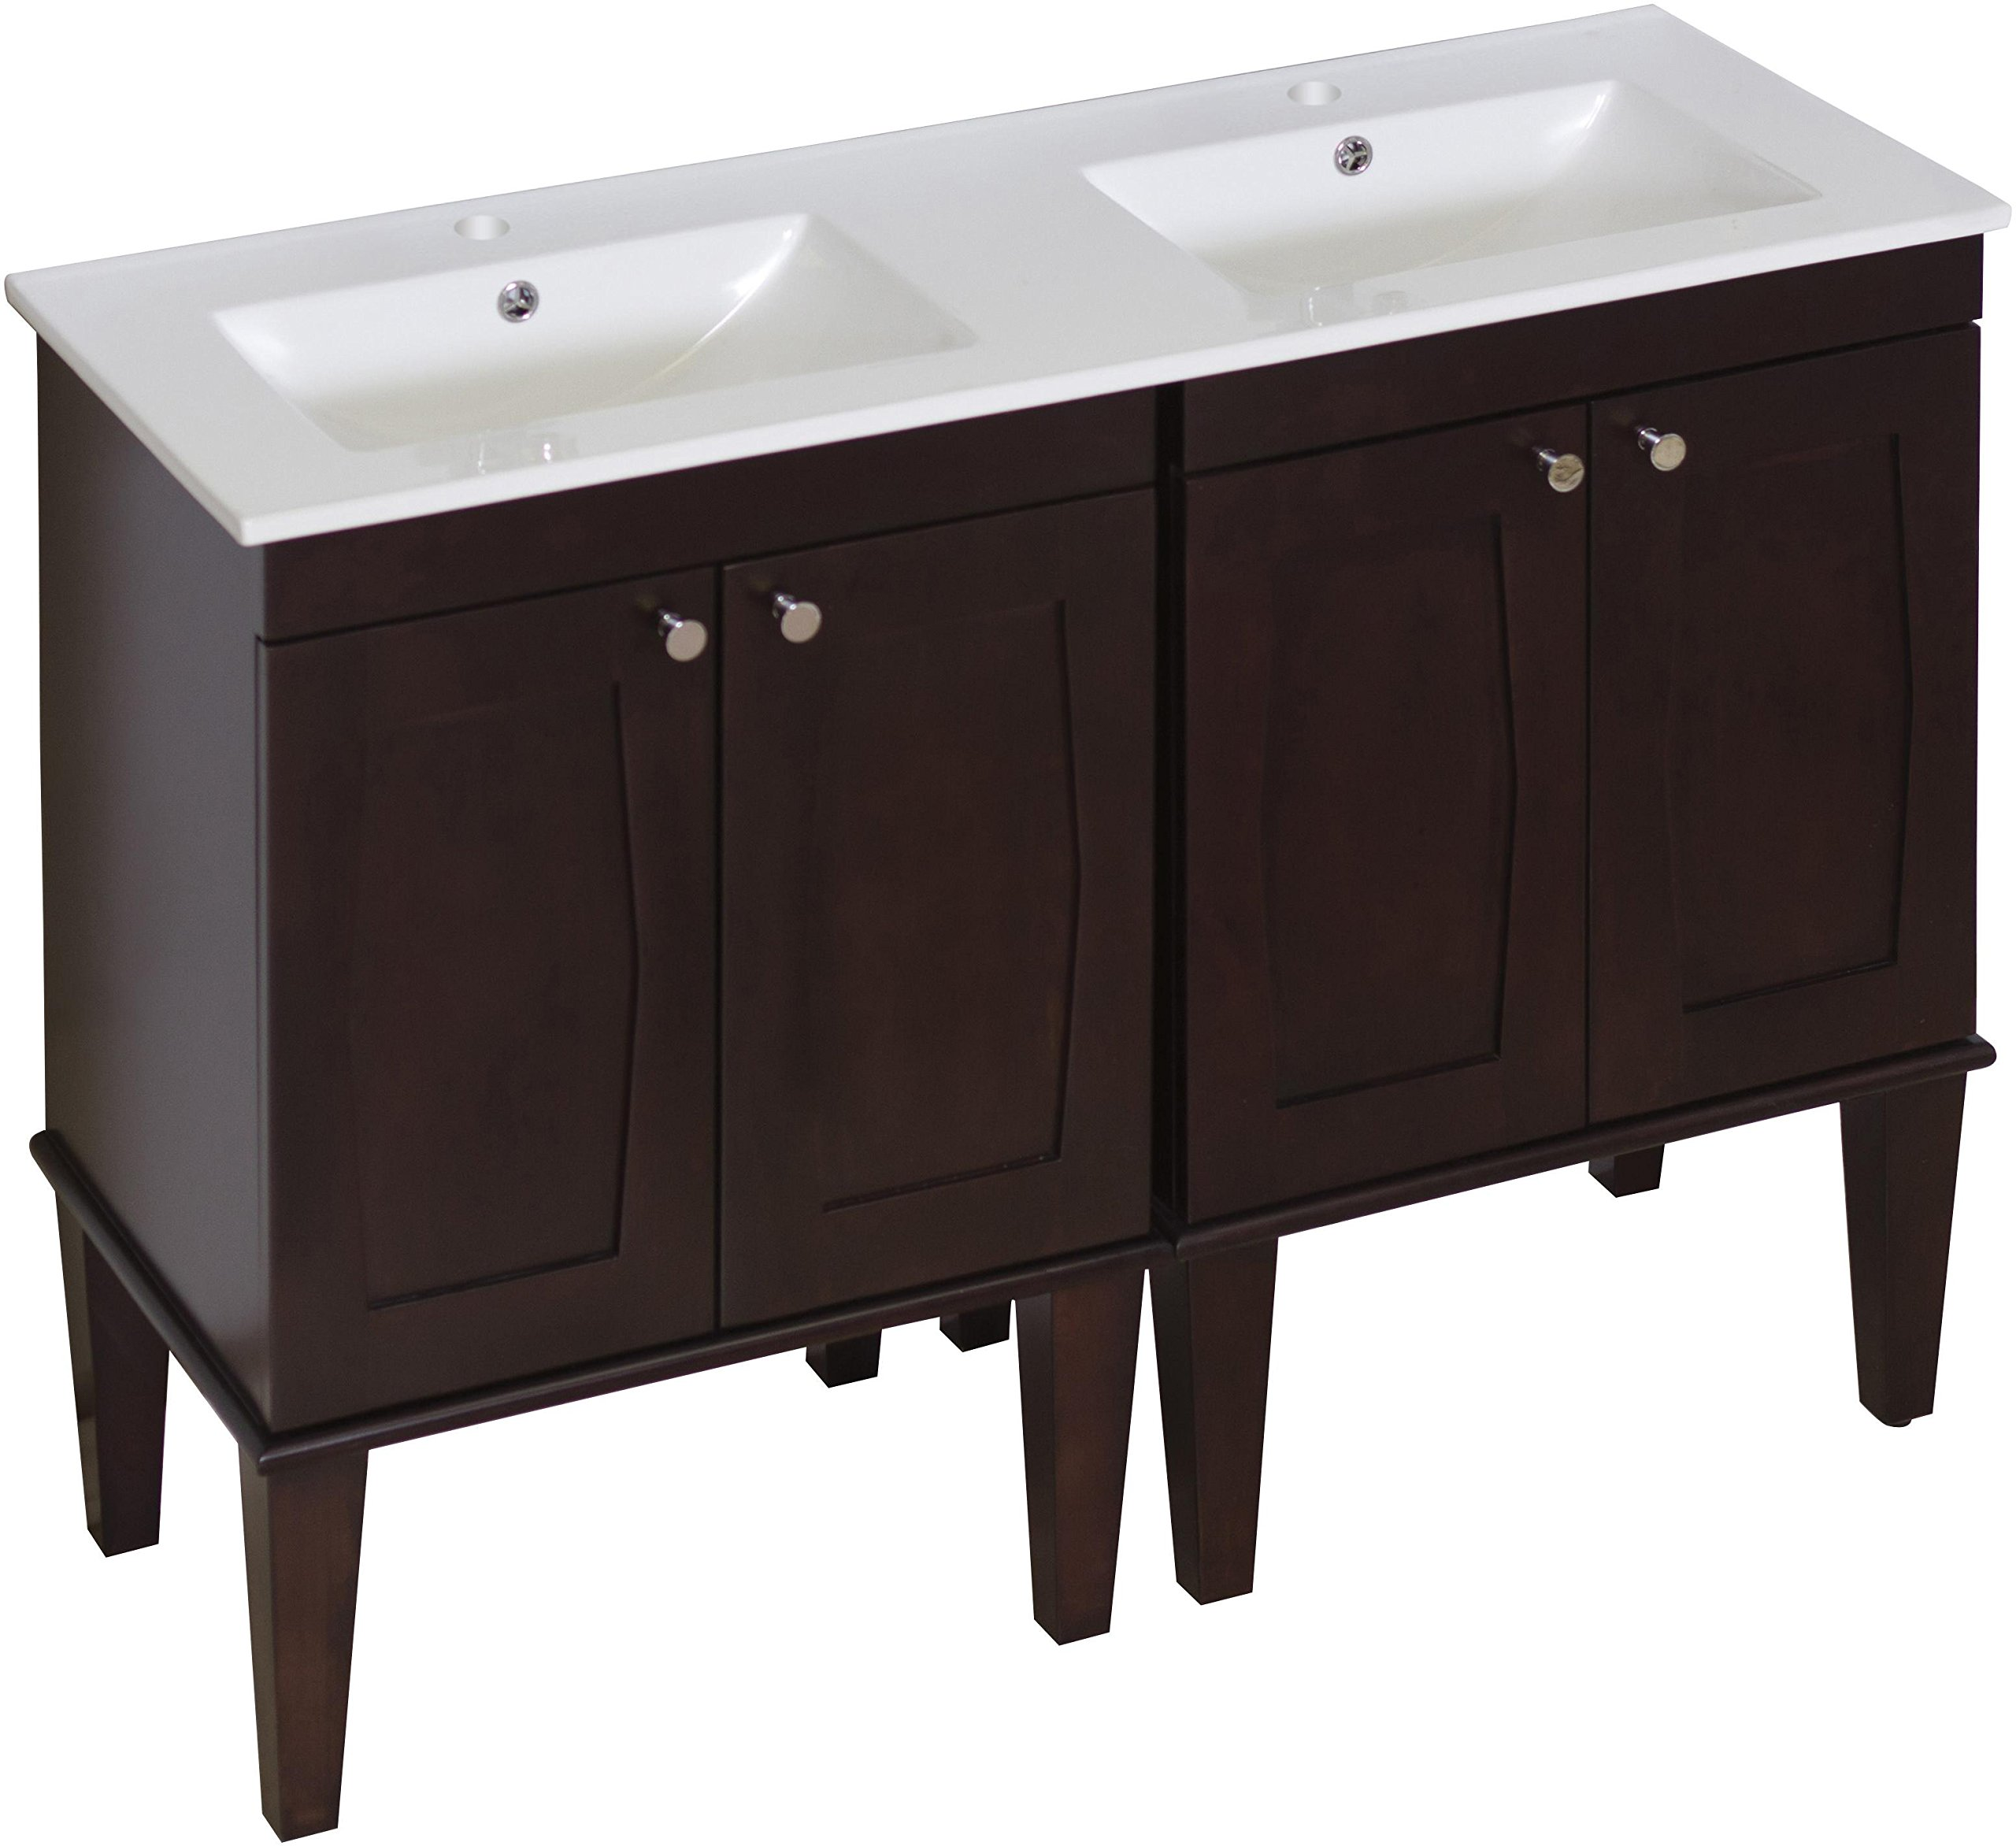 American Imaginations 750   48-Inch W X 18-Inch D Solid Wood Vanity with Soft-Close Doors and Double Sink White Ceramic Top for Single Hole Faucet Installation